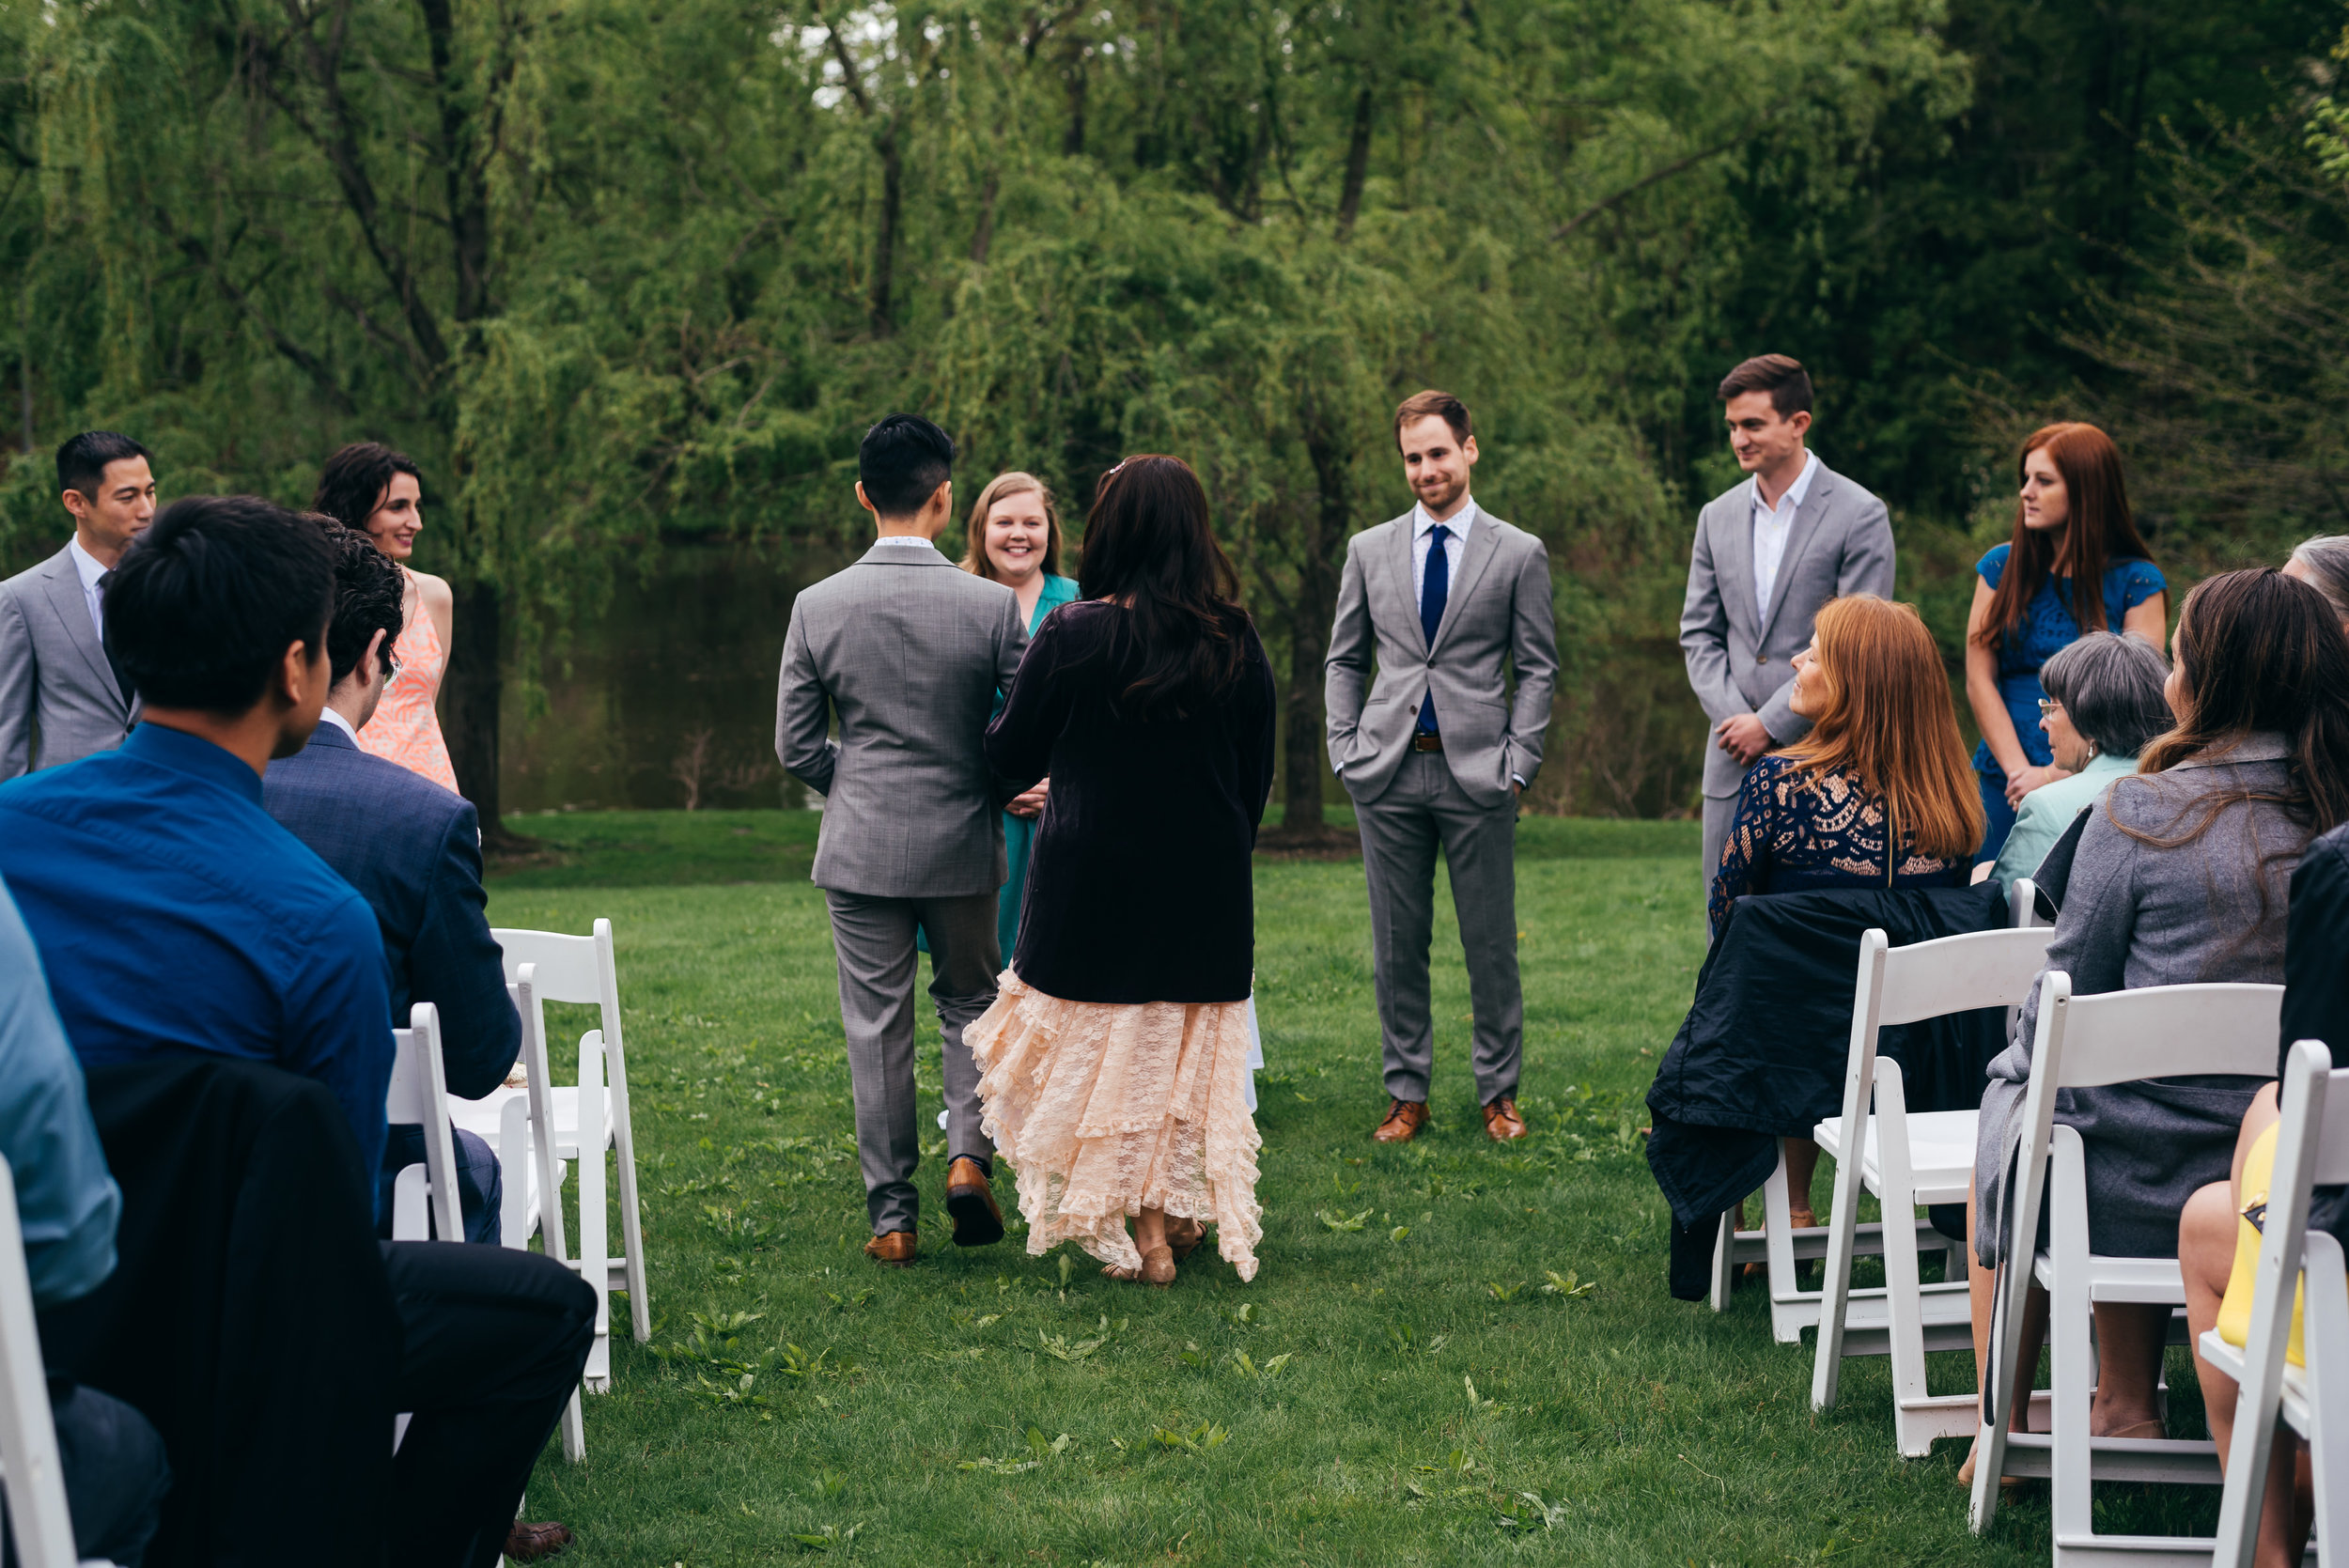 Scenes from Chad and Eddie's same sex ceremony in the Hudson River Valley at Buttermilk Falls Inn.